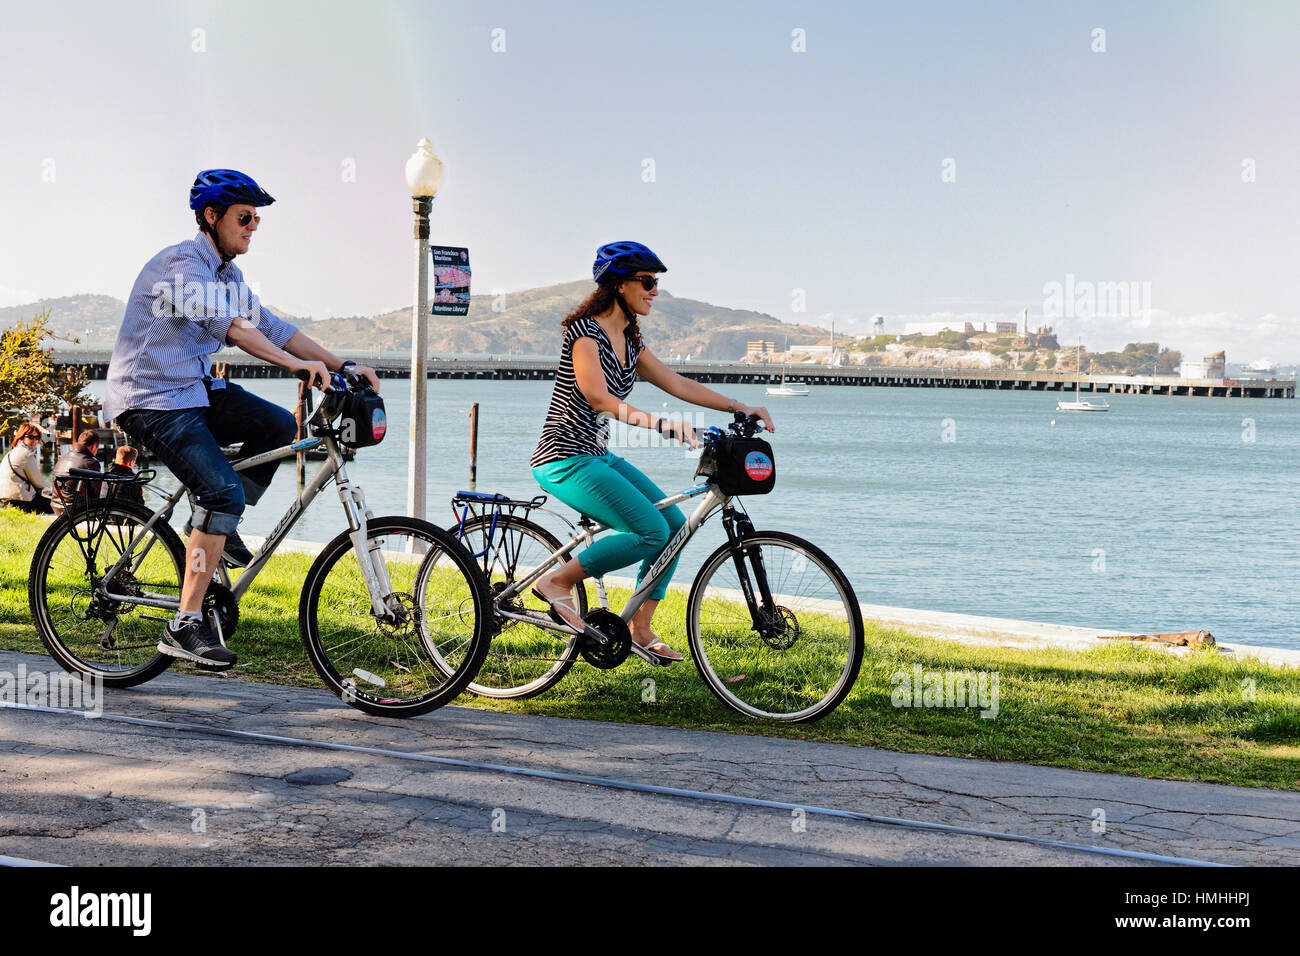 Couple Bicycling on a Path Along San Francisco Bay, California, USA - Stock Image